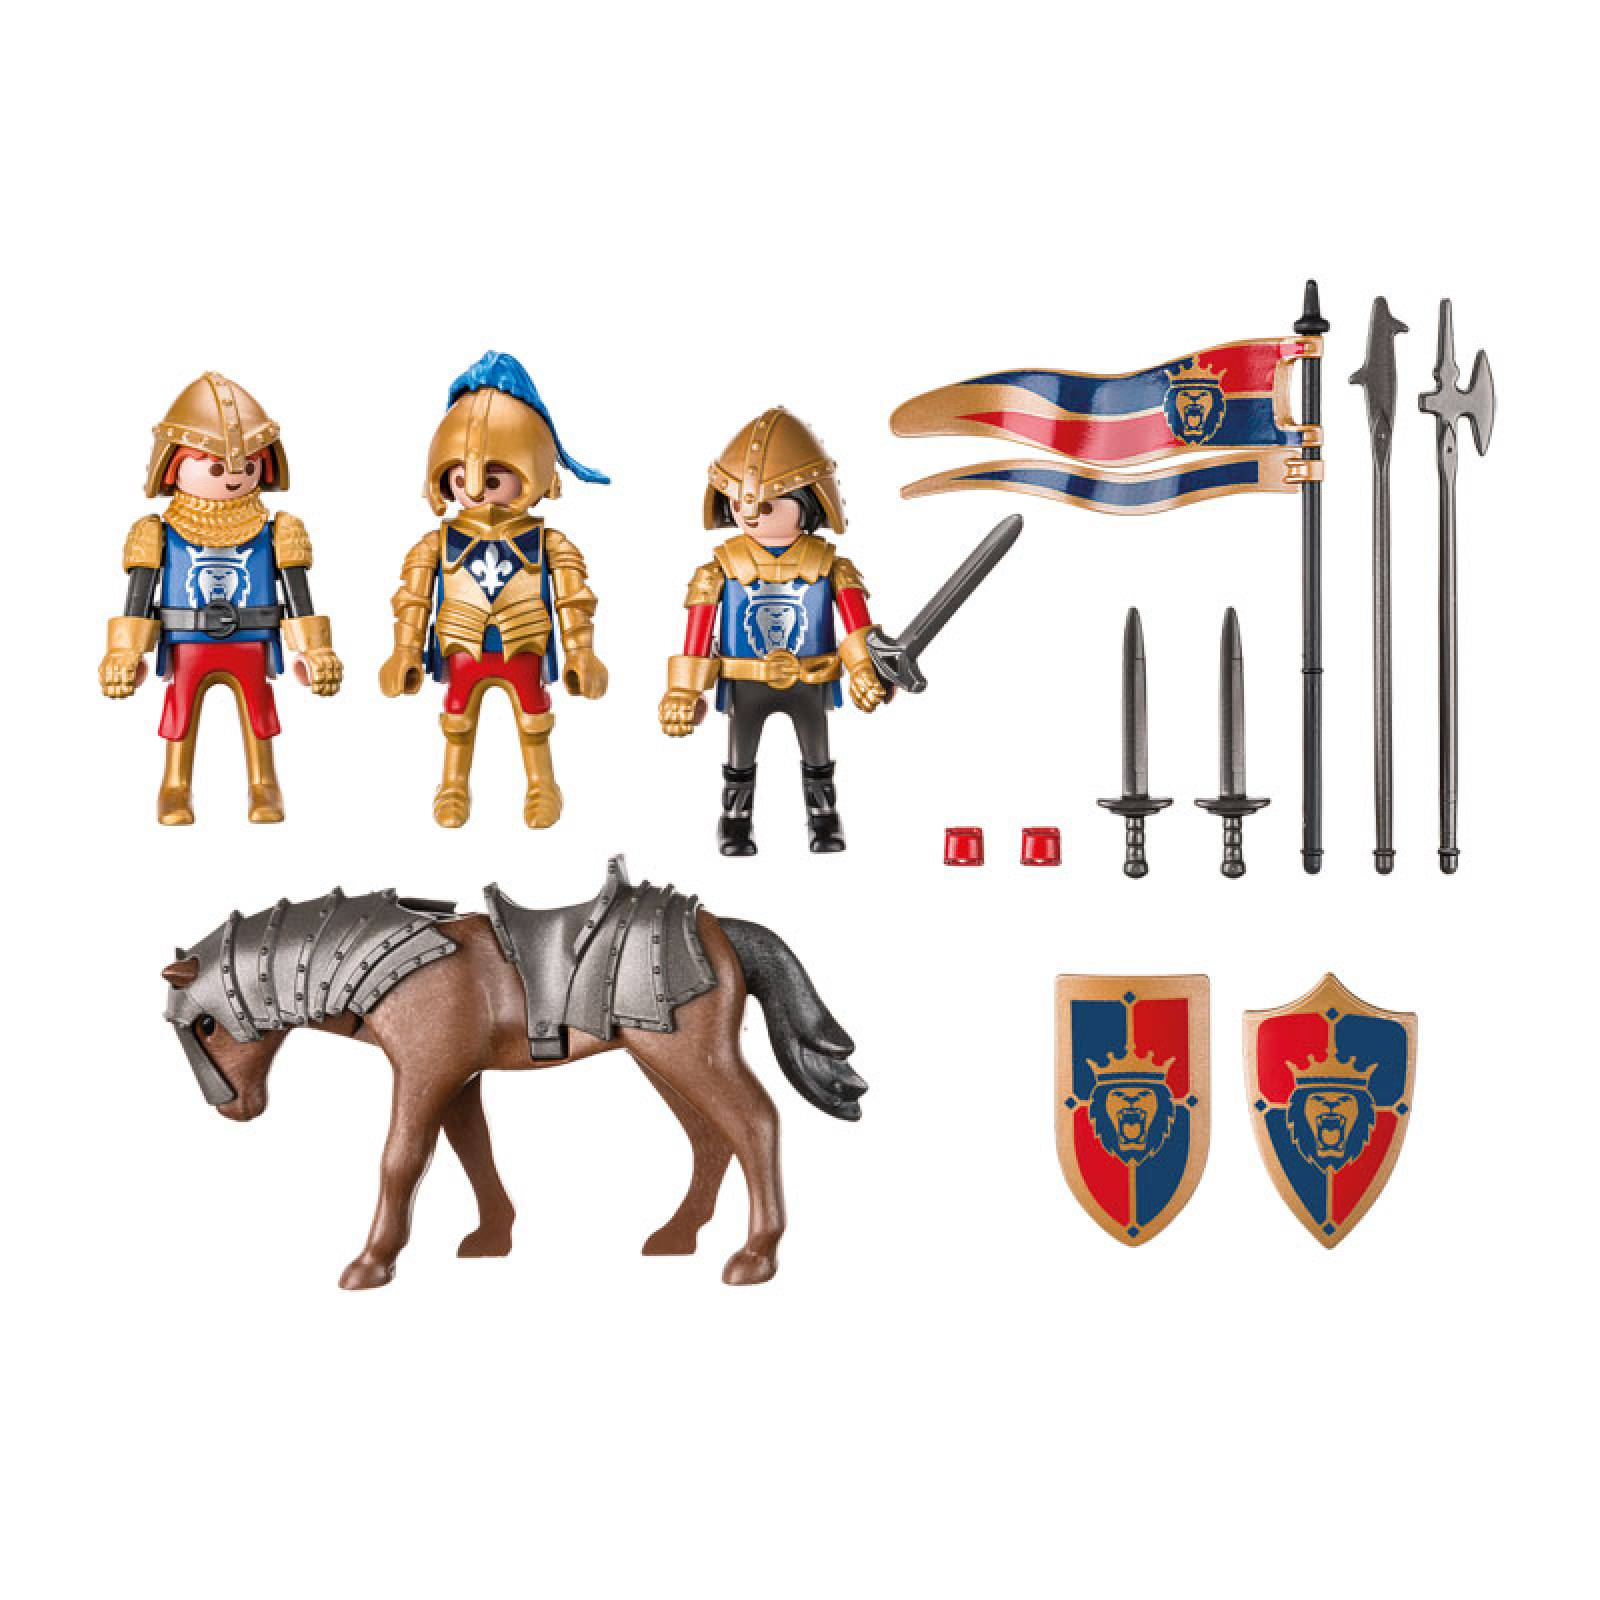 Royal Lion Knights Playmobil 6006 4-10yrs thumbnails